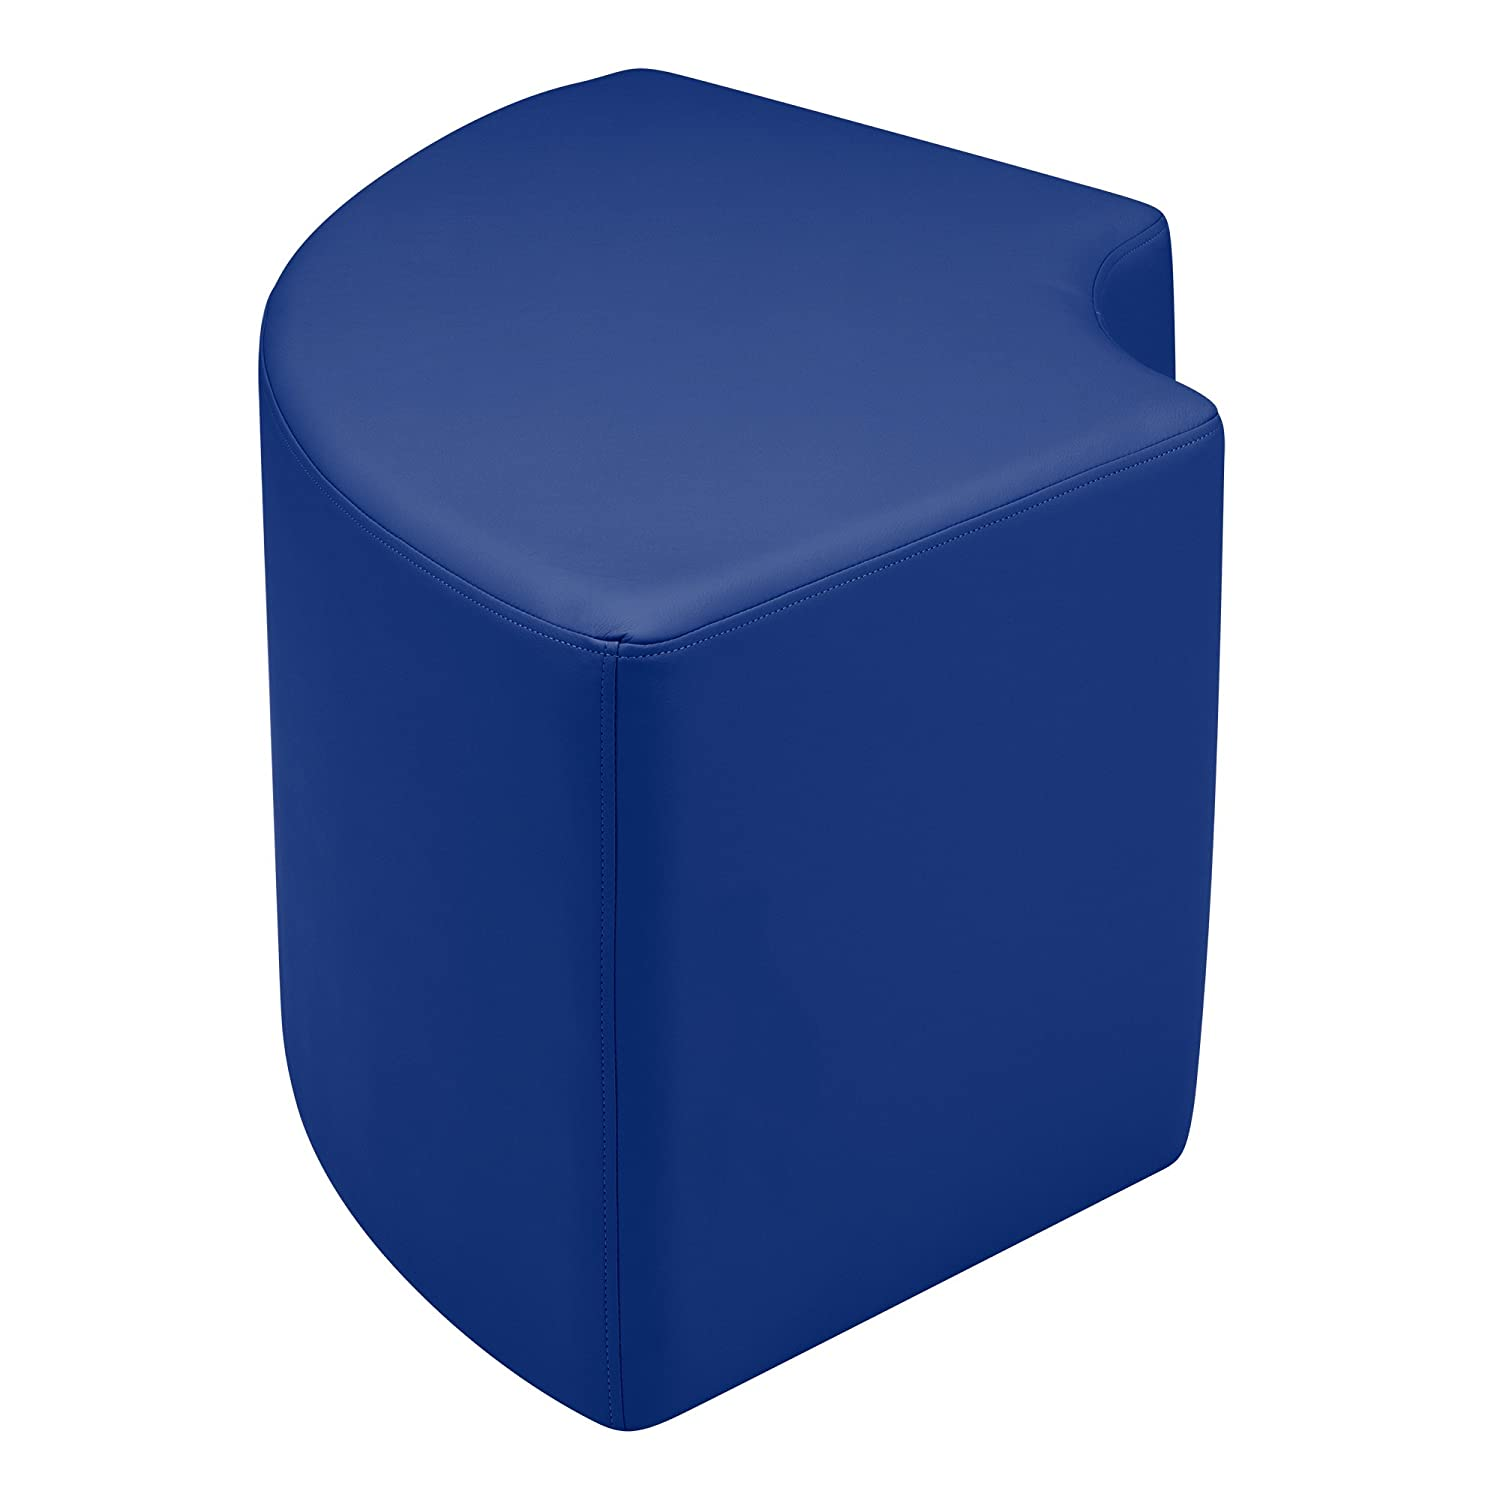 "Sprogs Vinyl Soft Seating Curved Stool, 18"" H, Blue, SPG-1012BL-A"